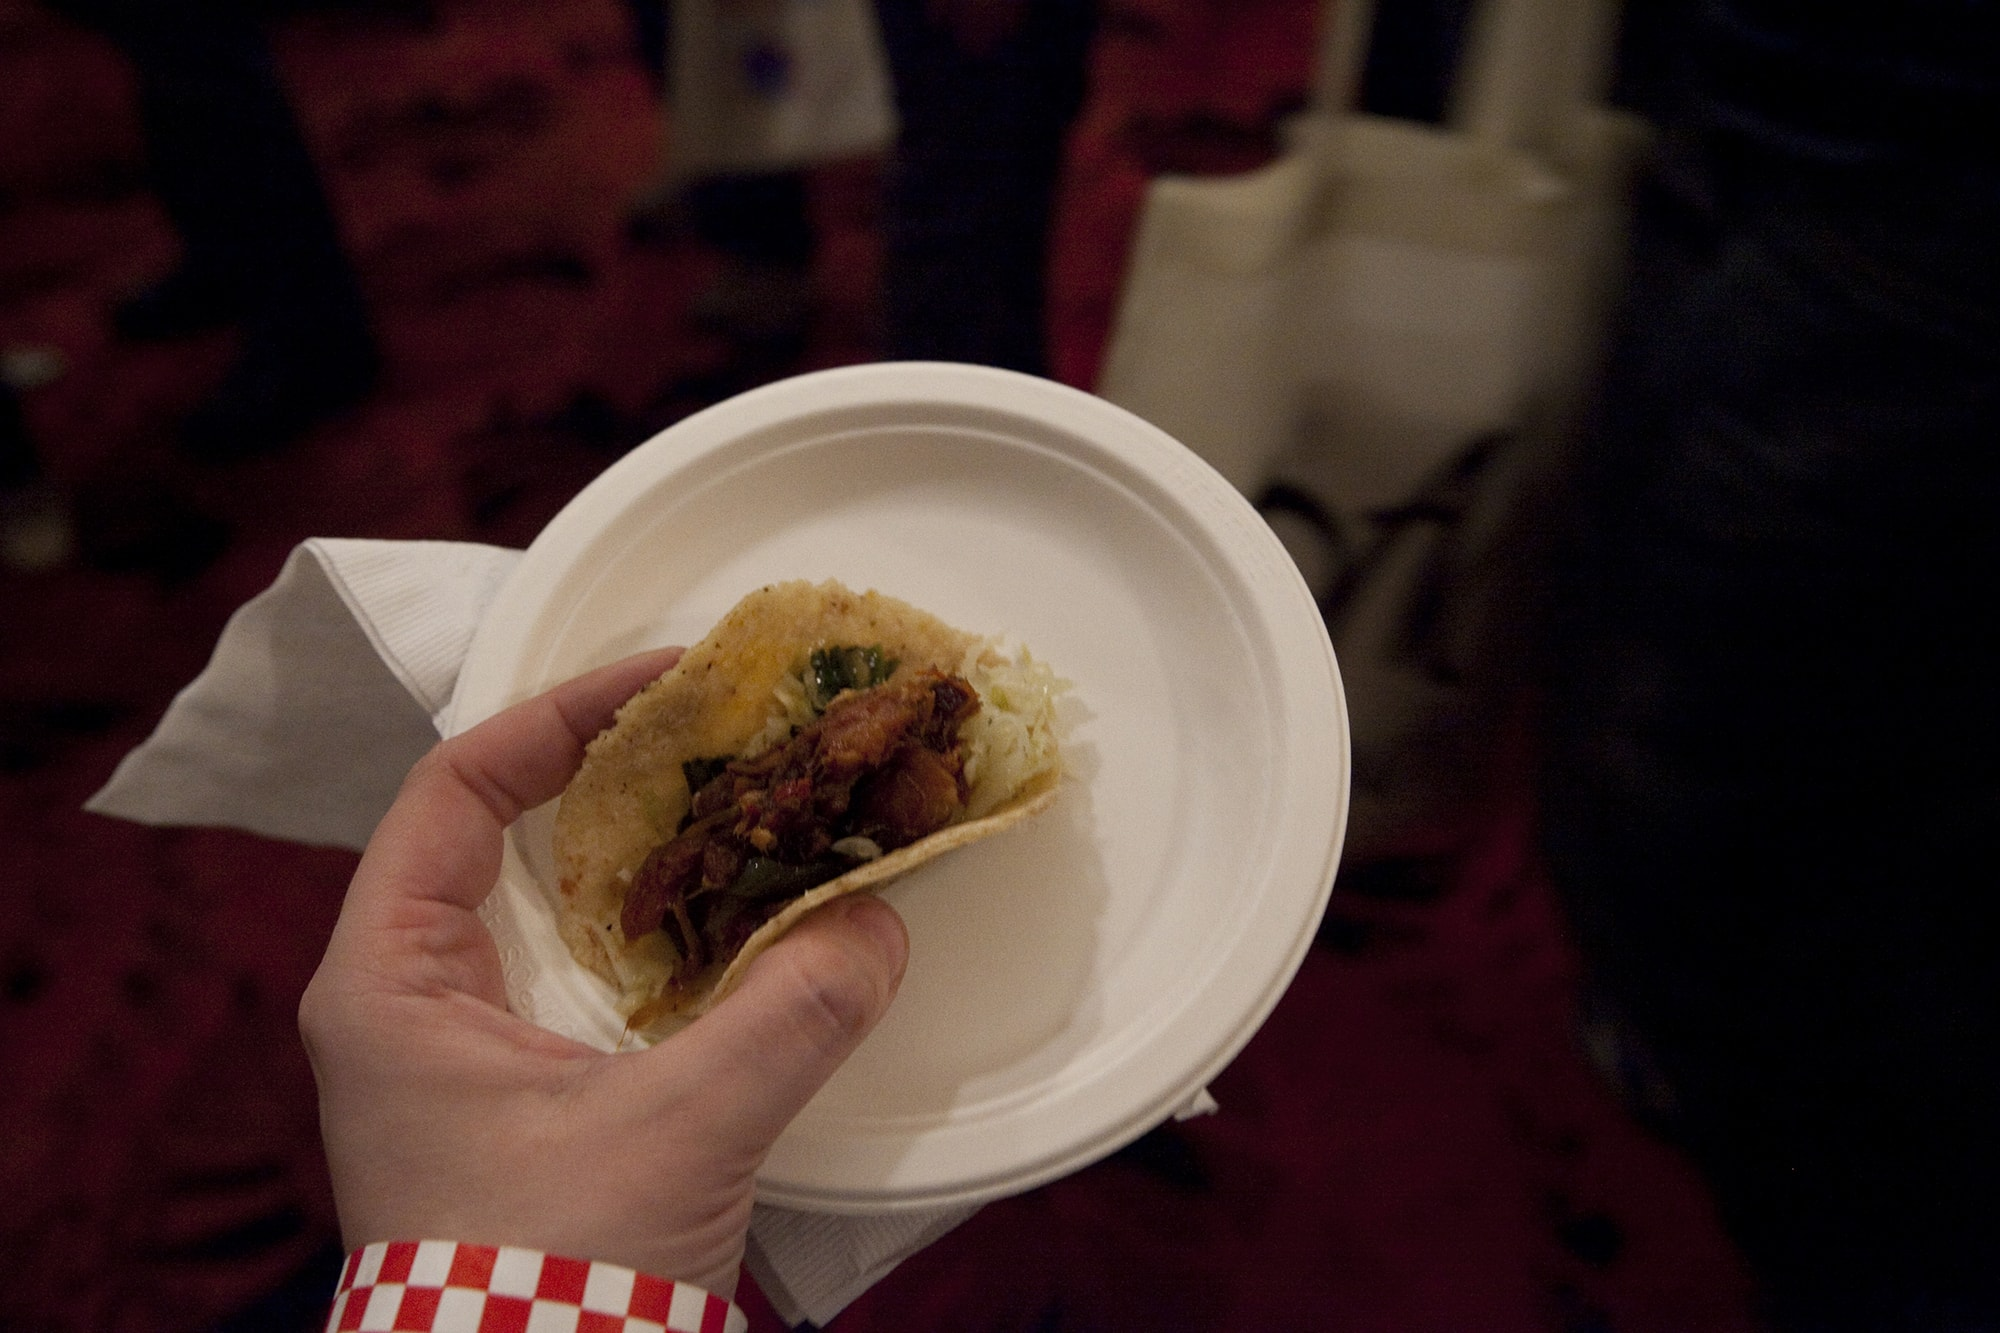 Bacon tacos from Primehouse at Baconfest Chicago - a bacon festival